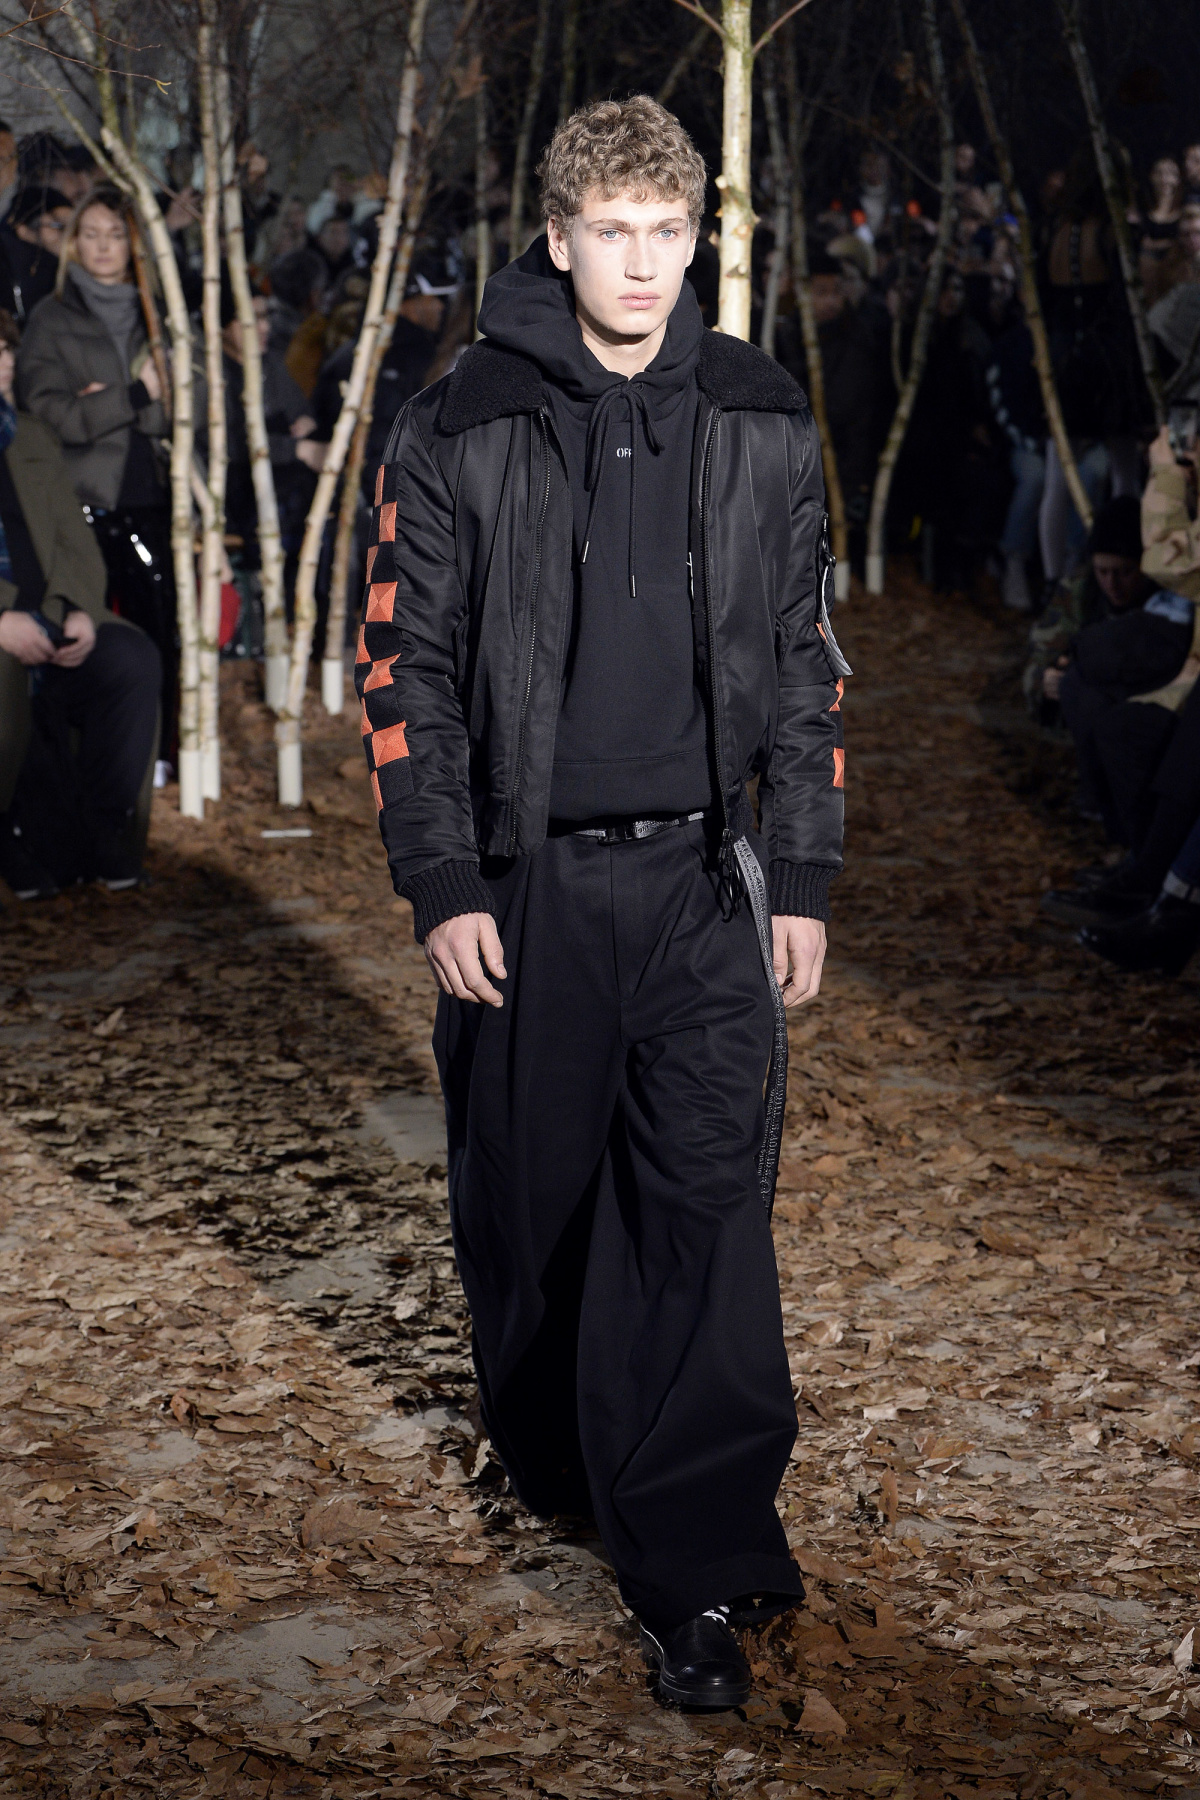 off_white_look_31_2017_aw_mens.jpeg